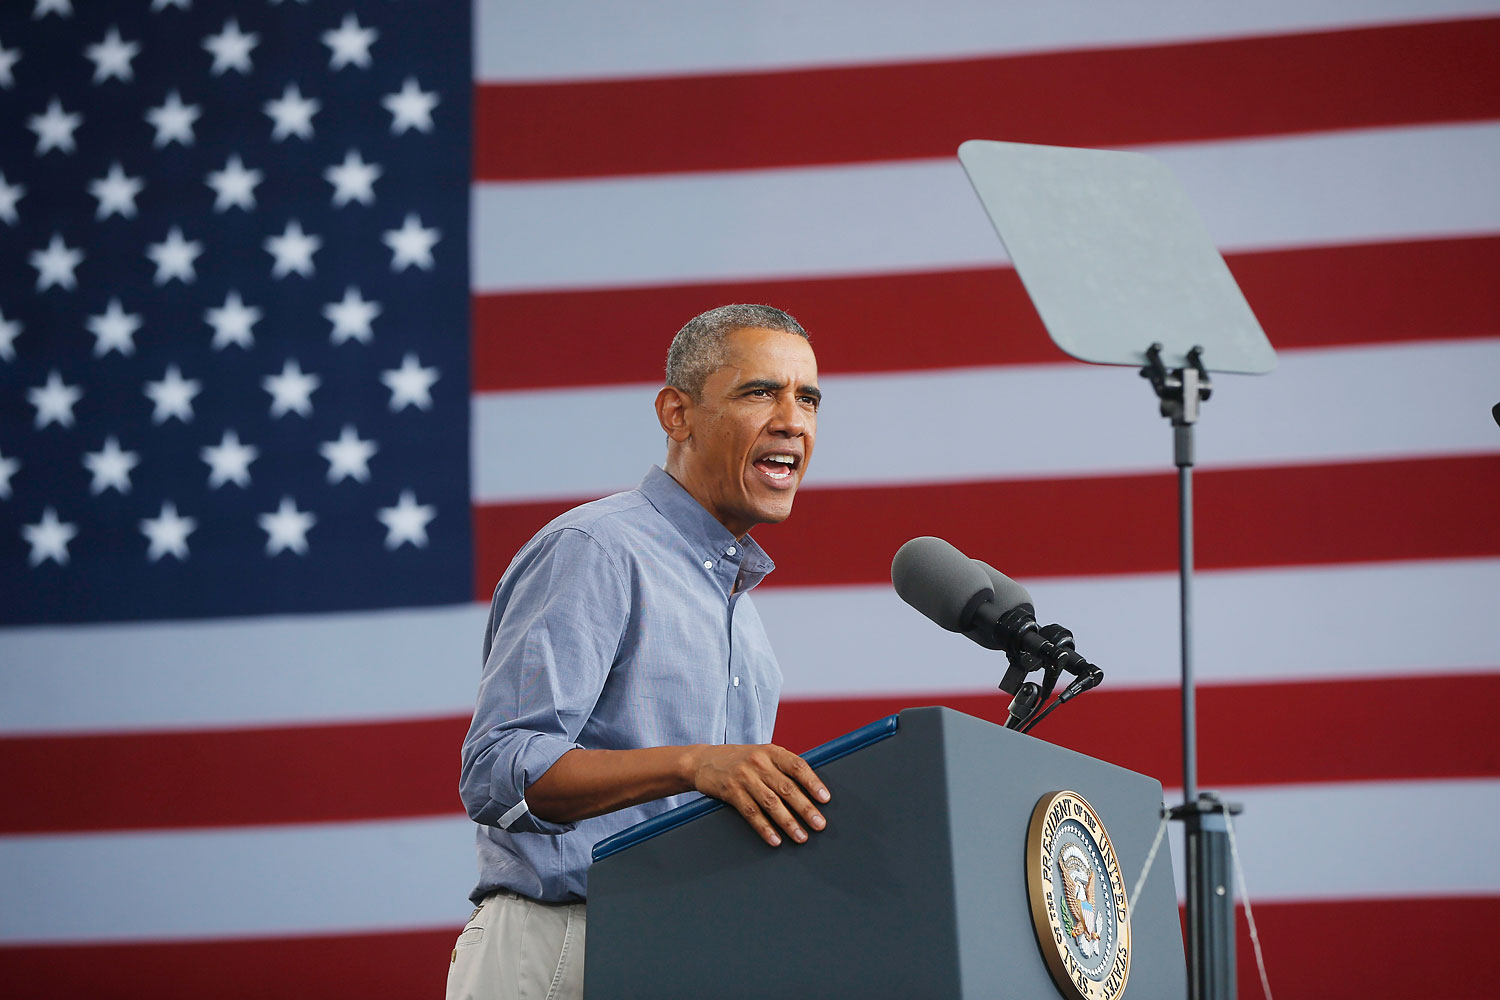 President Barack Obama speaks at Laborfest 2014 at Henry Maier Festival Park in Milwaukee on Labor Day, Sept. 1, 2014